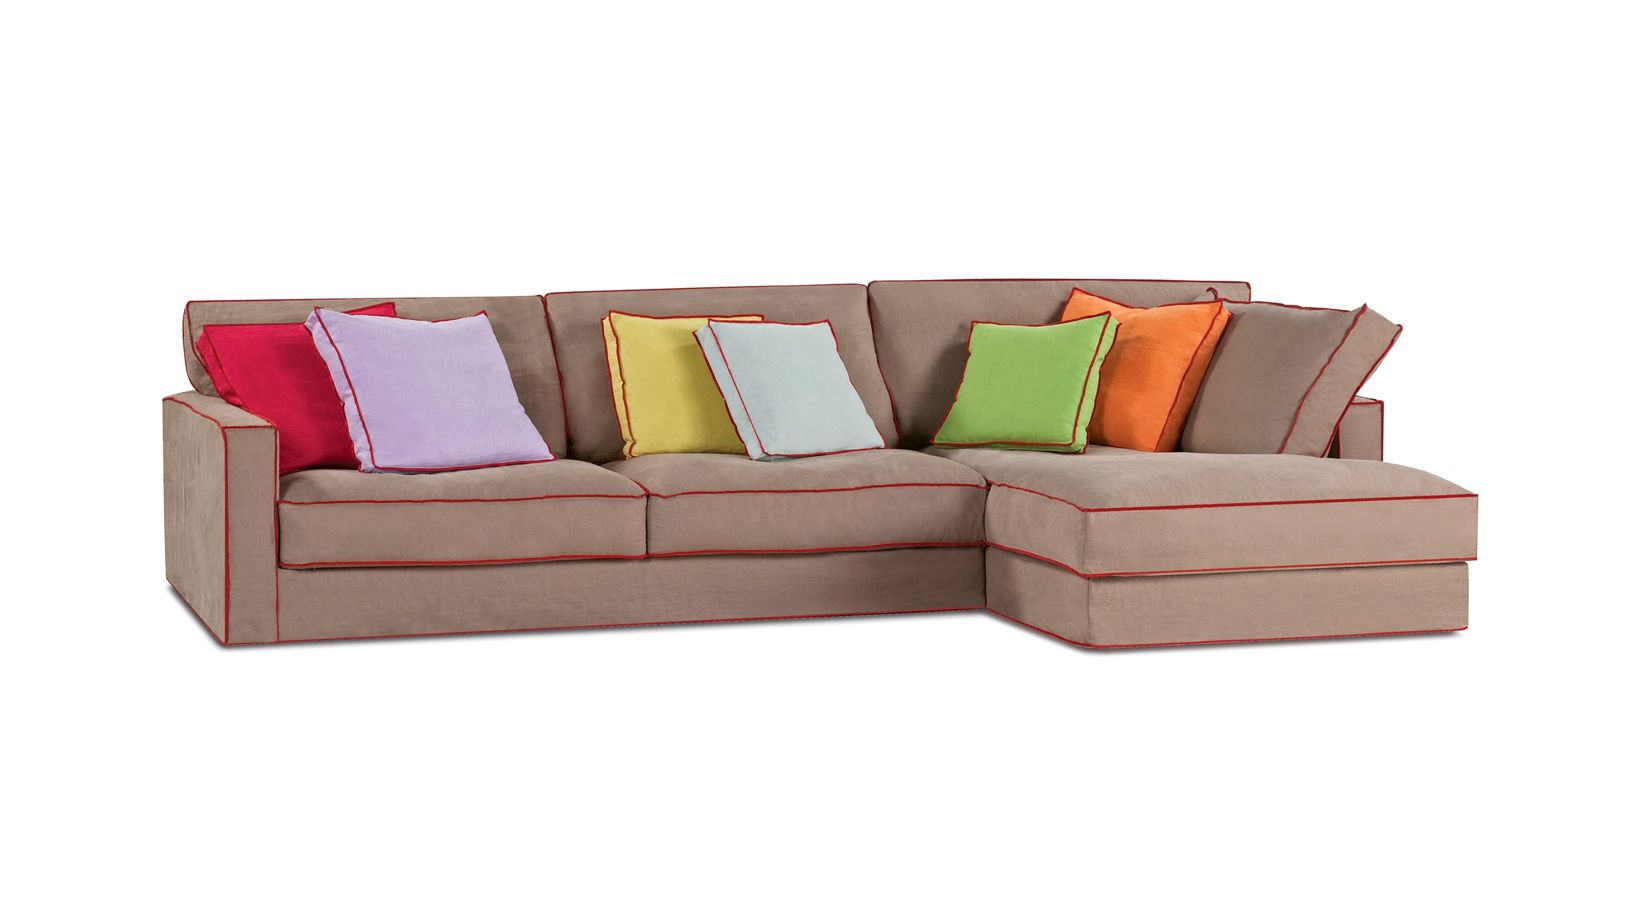 Roche bobois long island sofa for Sofa 1 80 breit